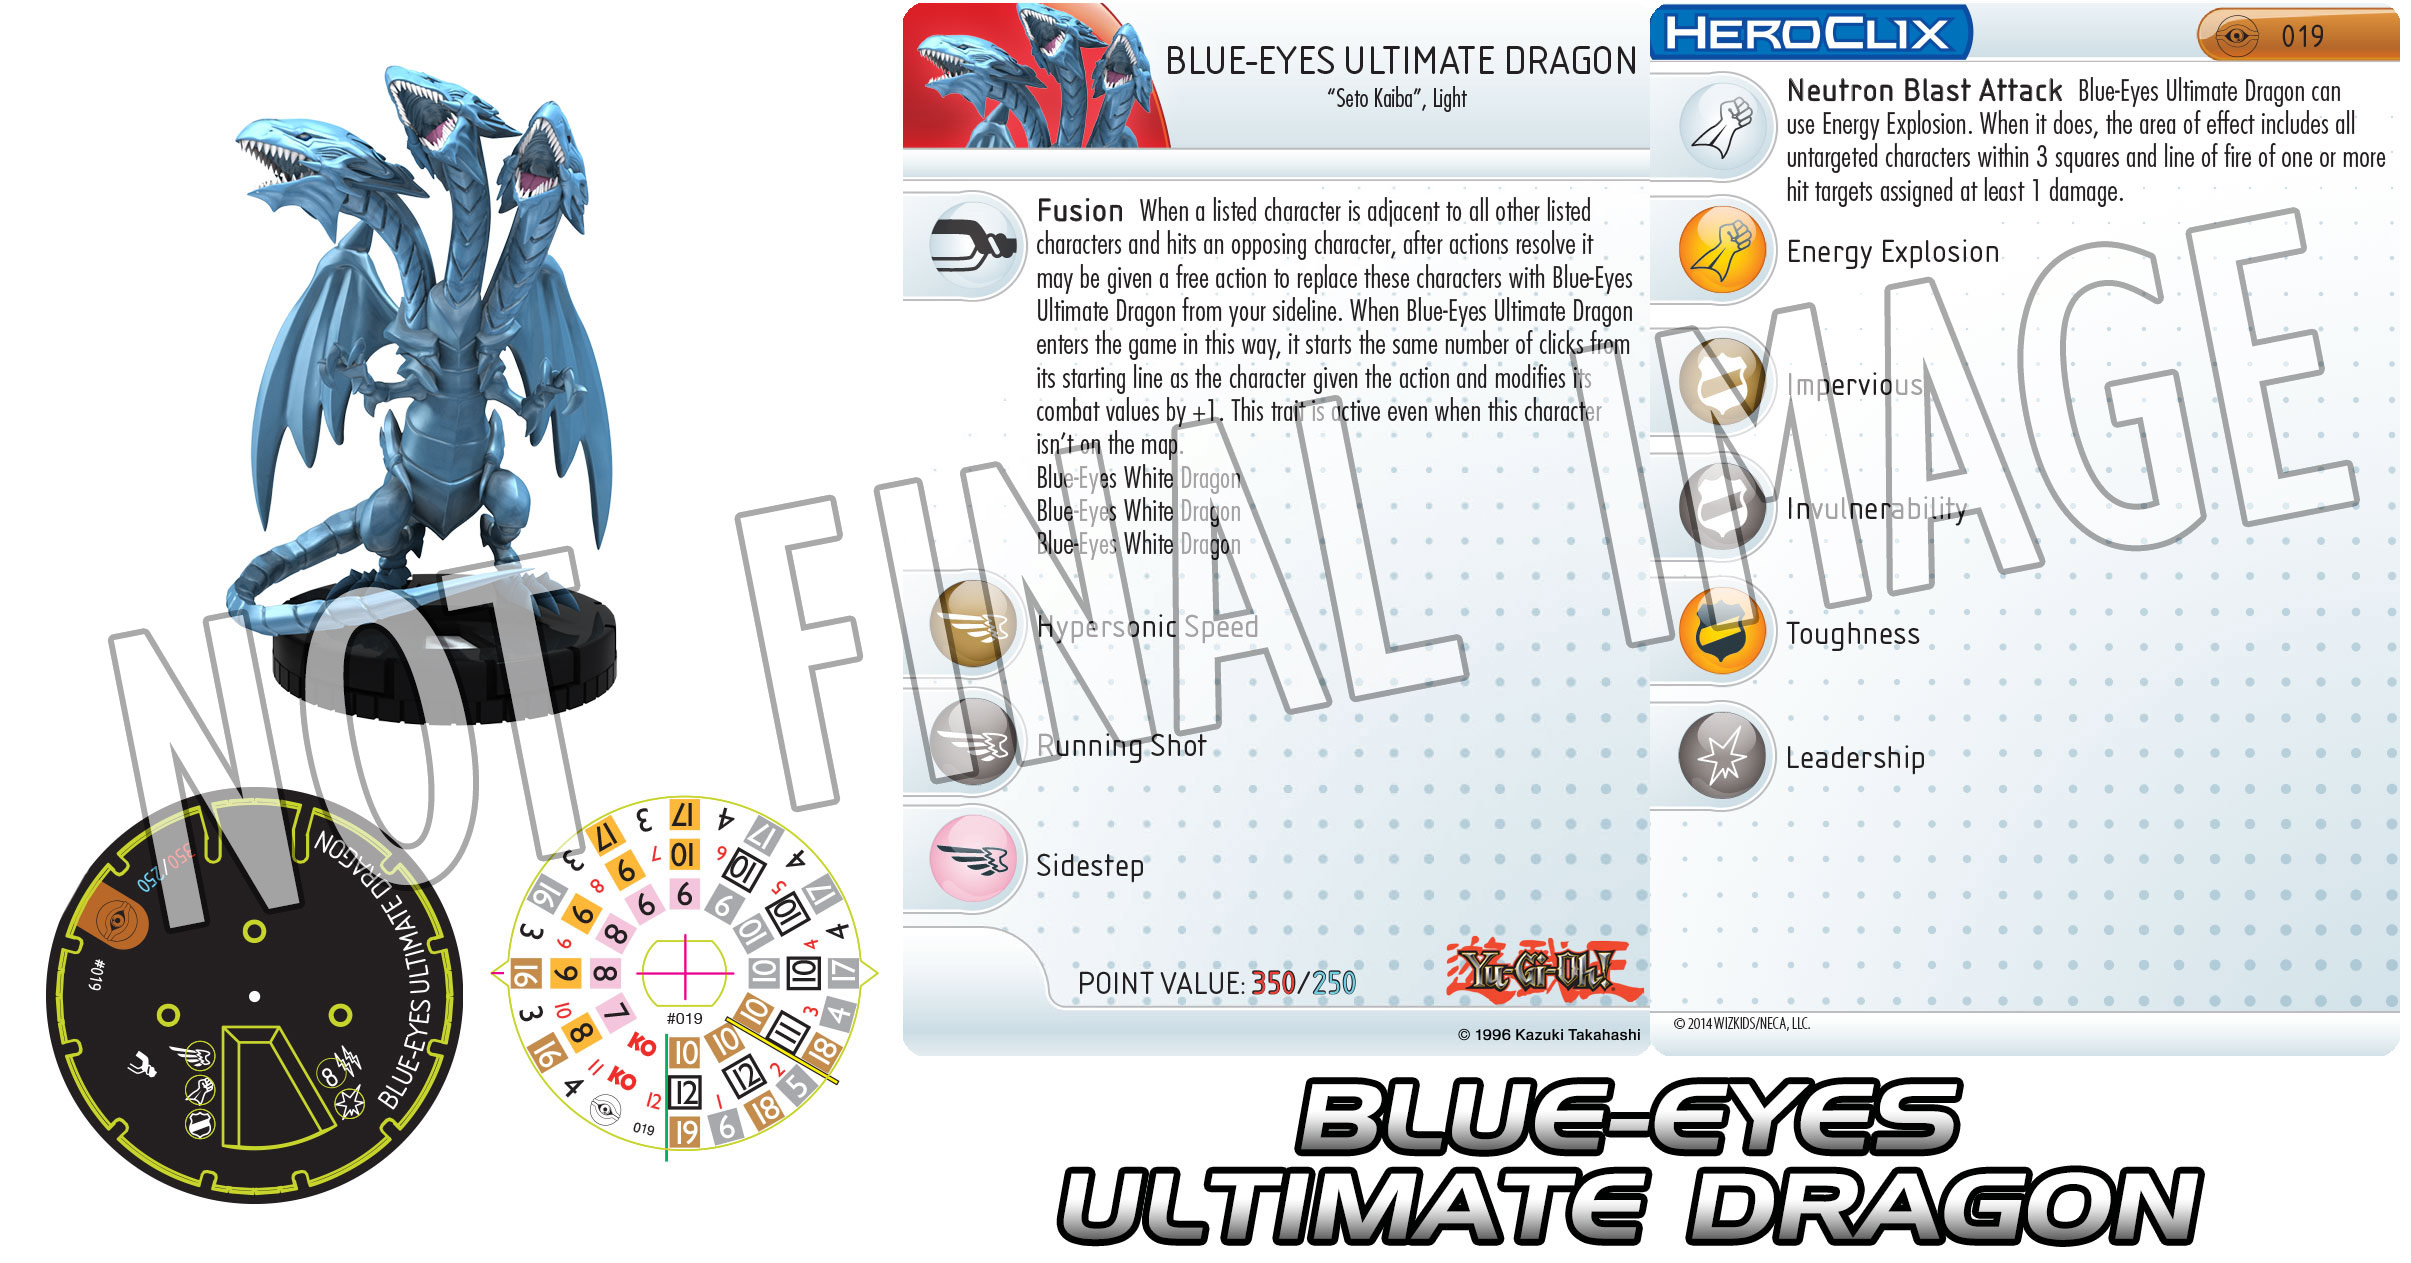 Blue Eyes Ultimate Dragon Preview Heroclix Wp Content Uploaate